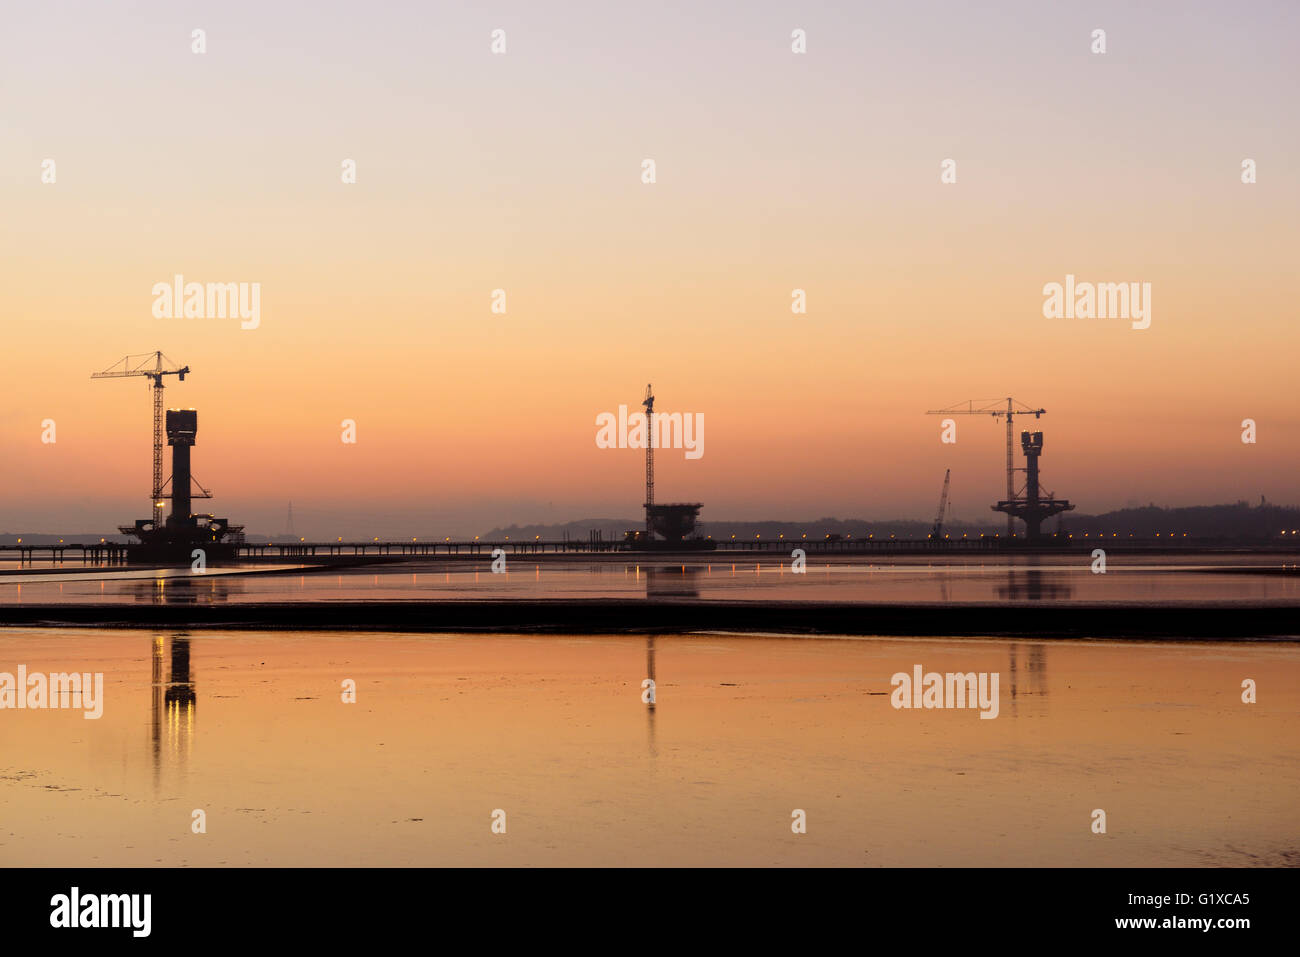 Sunrise over the Mersey Gateway Bridge currently being built to span the River Mersey between Runcorn and Widnes. - Stock Image